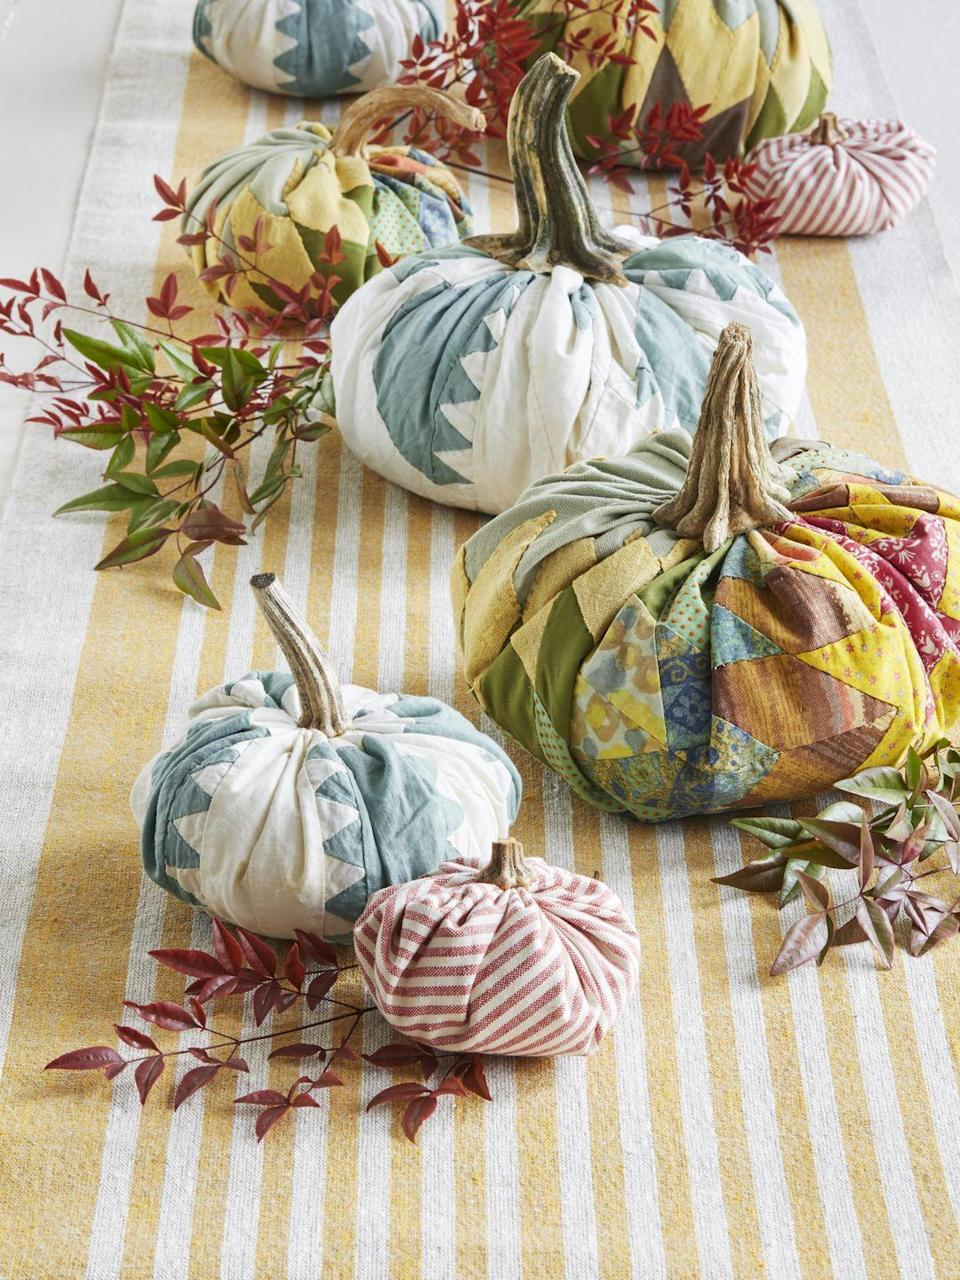 <p>Craft your own personal pumpkin patch using old quilts and fabric scraps. To make, start with a round piece of fabric and a ball of batting (about the size you want your finished pumpkin to be). Gather up the fabric around the batting and hot glue it together in the center. Collect dried stems, or purchase faux stems, and attach with hot glue for a realistic touch. Line the middle of a long farmhouse table with a runner, then pile on your creations and other seasonal greenery. These would be an adorable accent to a mantel or buffet as well.</p>